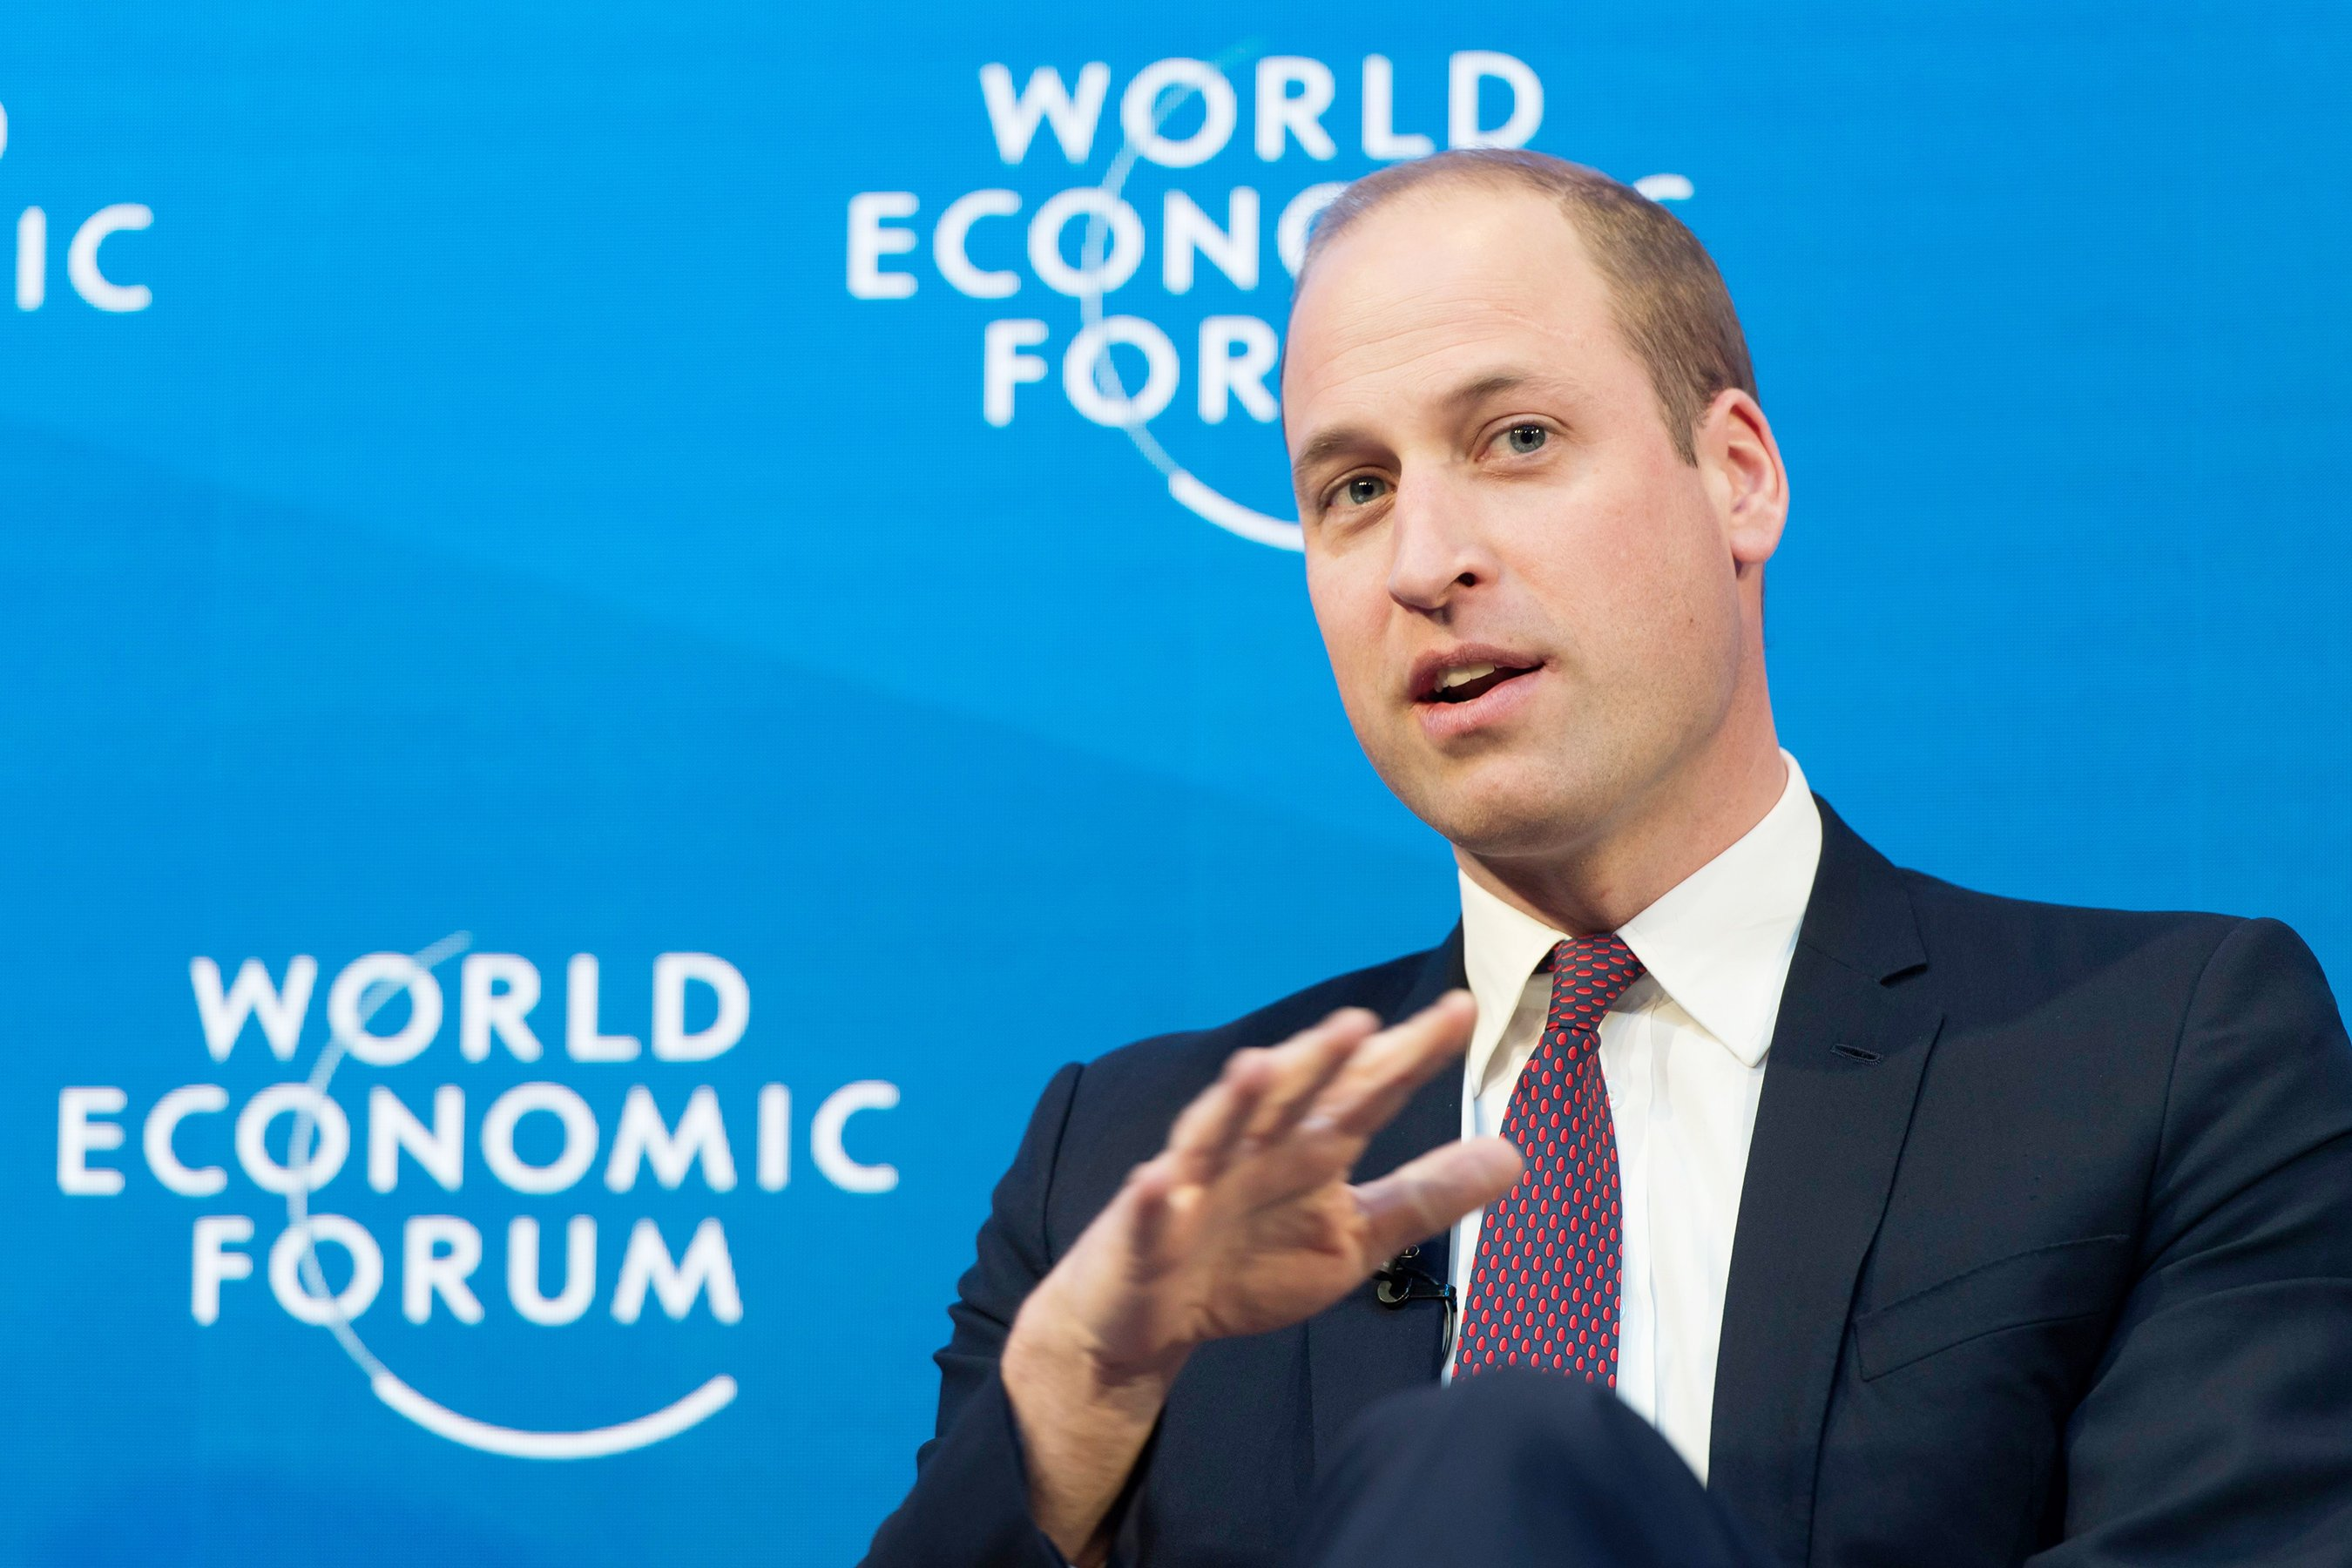 Prince William on His Own Mental Health: 'I Still Find It Very Difficult to Talk About It'